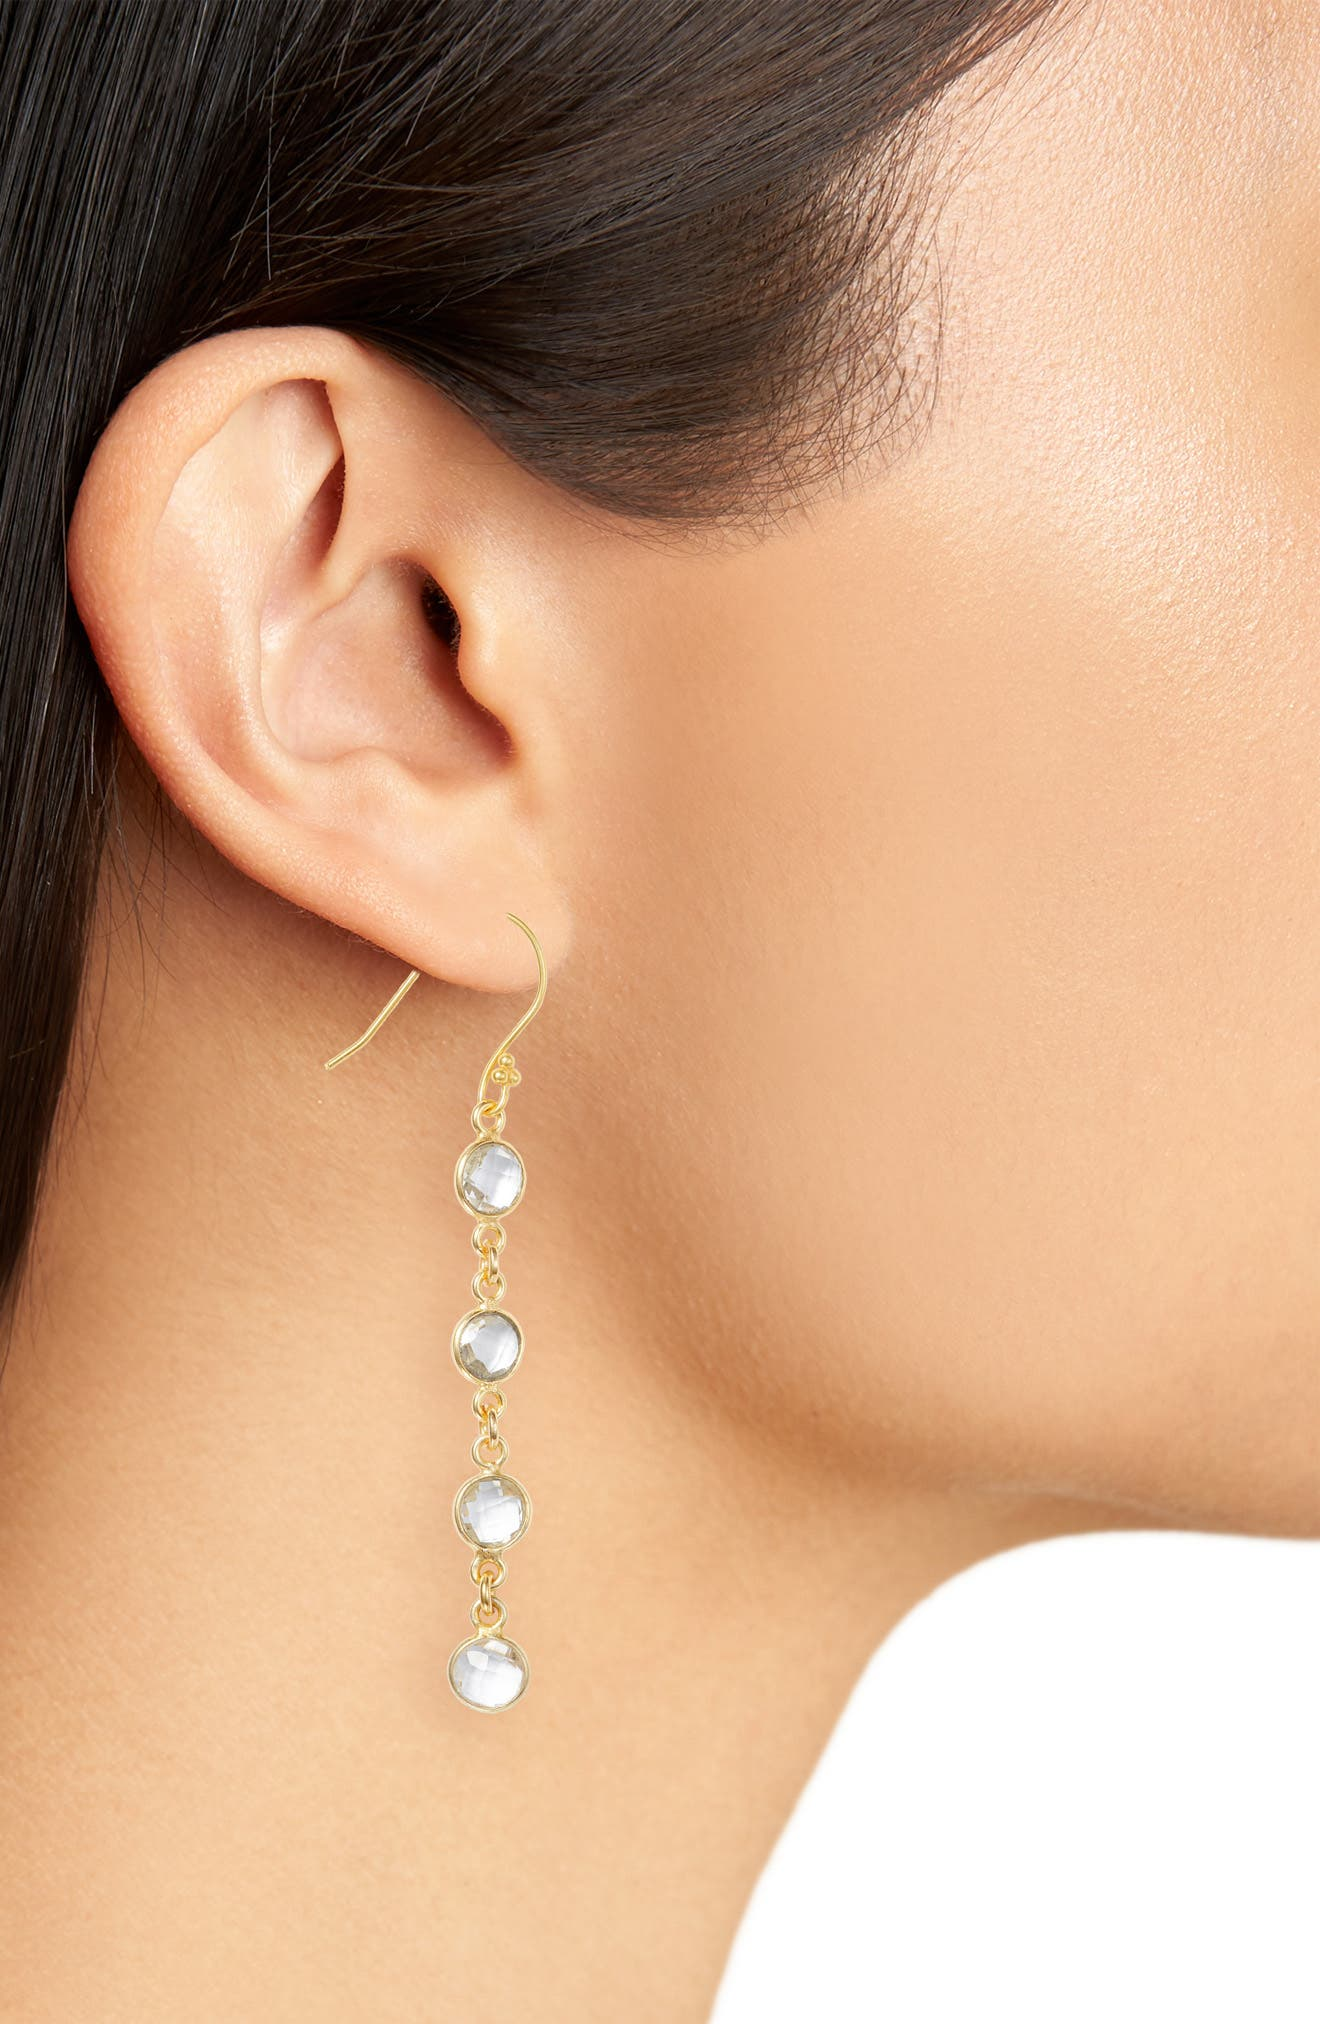 Stone Drop Earrings,                             Alternate thumbnail 2, color,                             Crystal Quartz